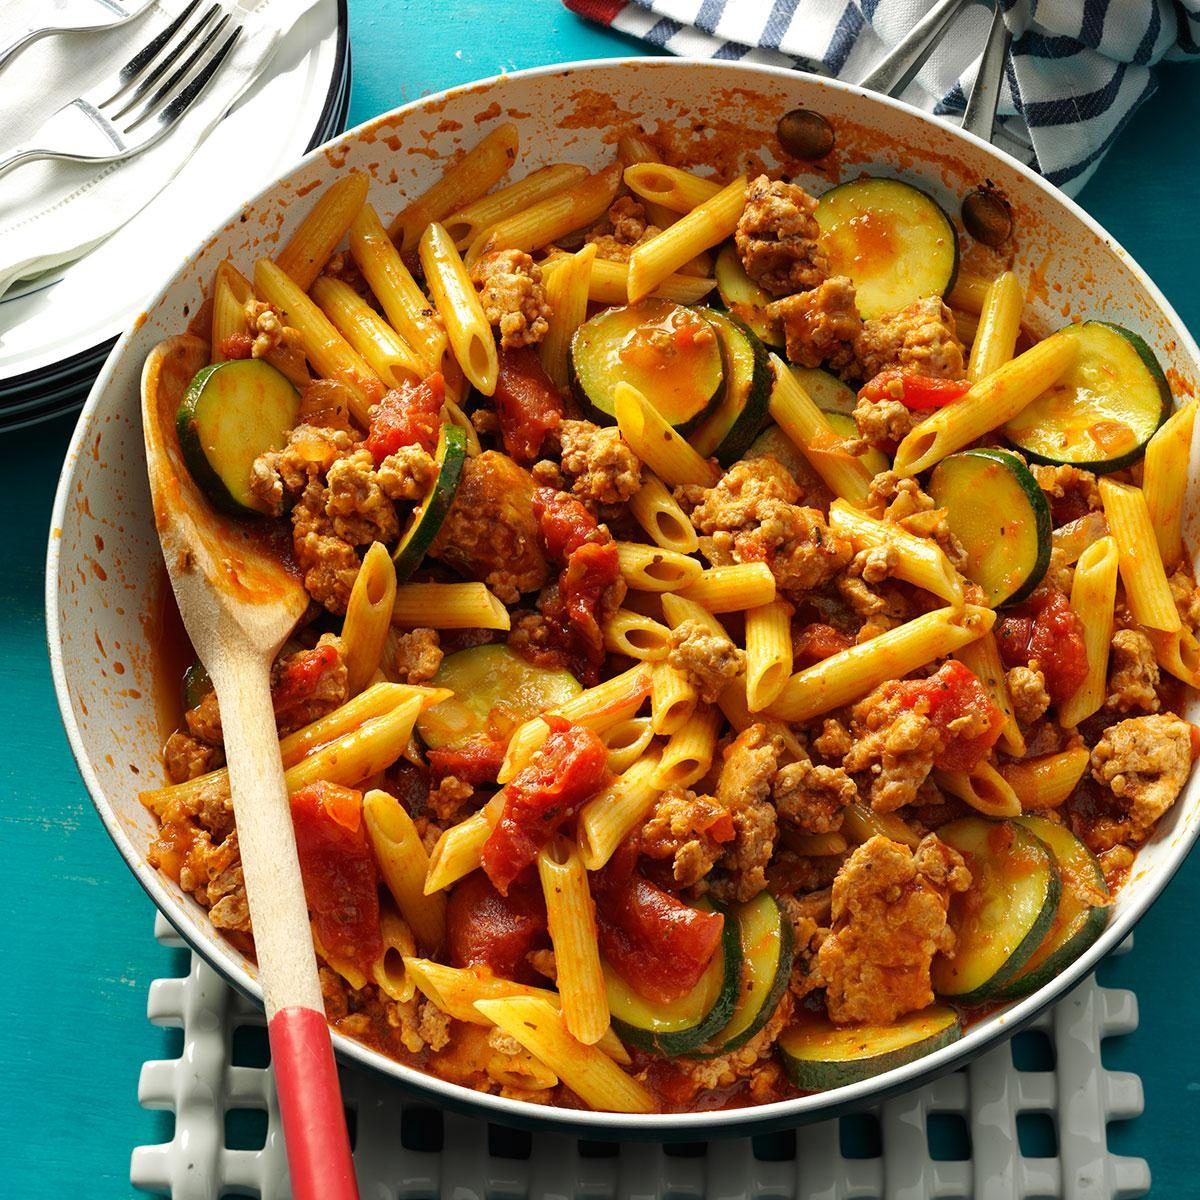 pork ground jiffy recipes skillet recipe penne taste pasta meals cooking ready zucchini sausage dinner dishes dinners chicken barbecue beef